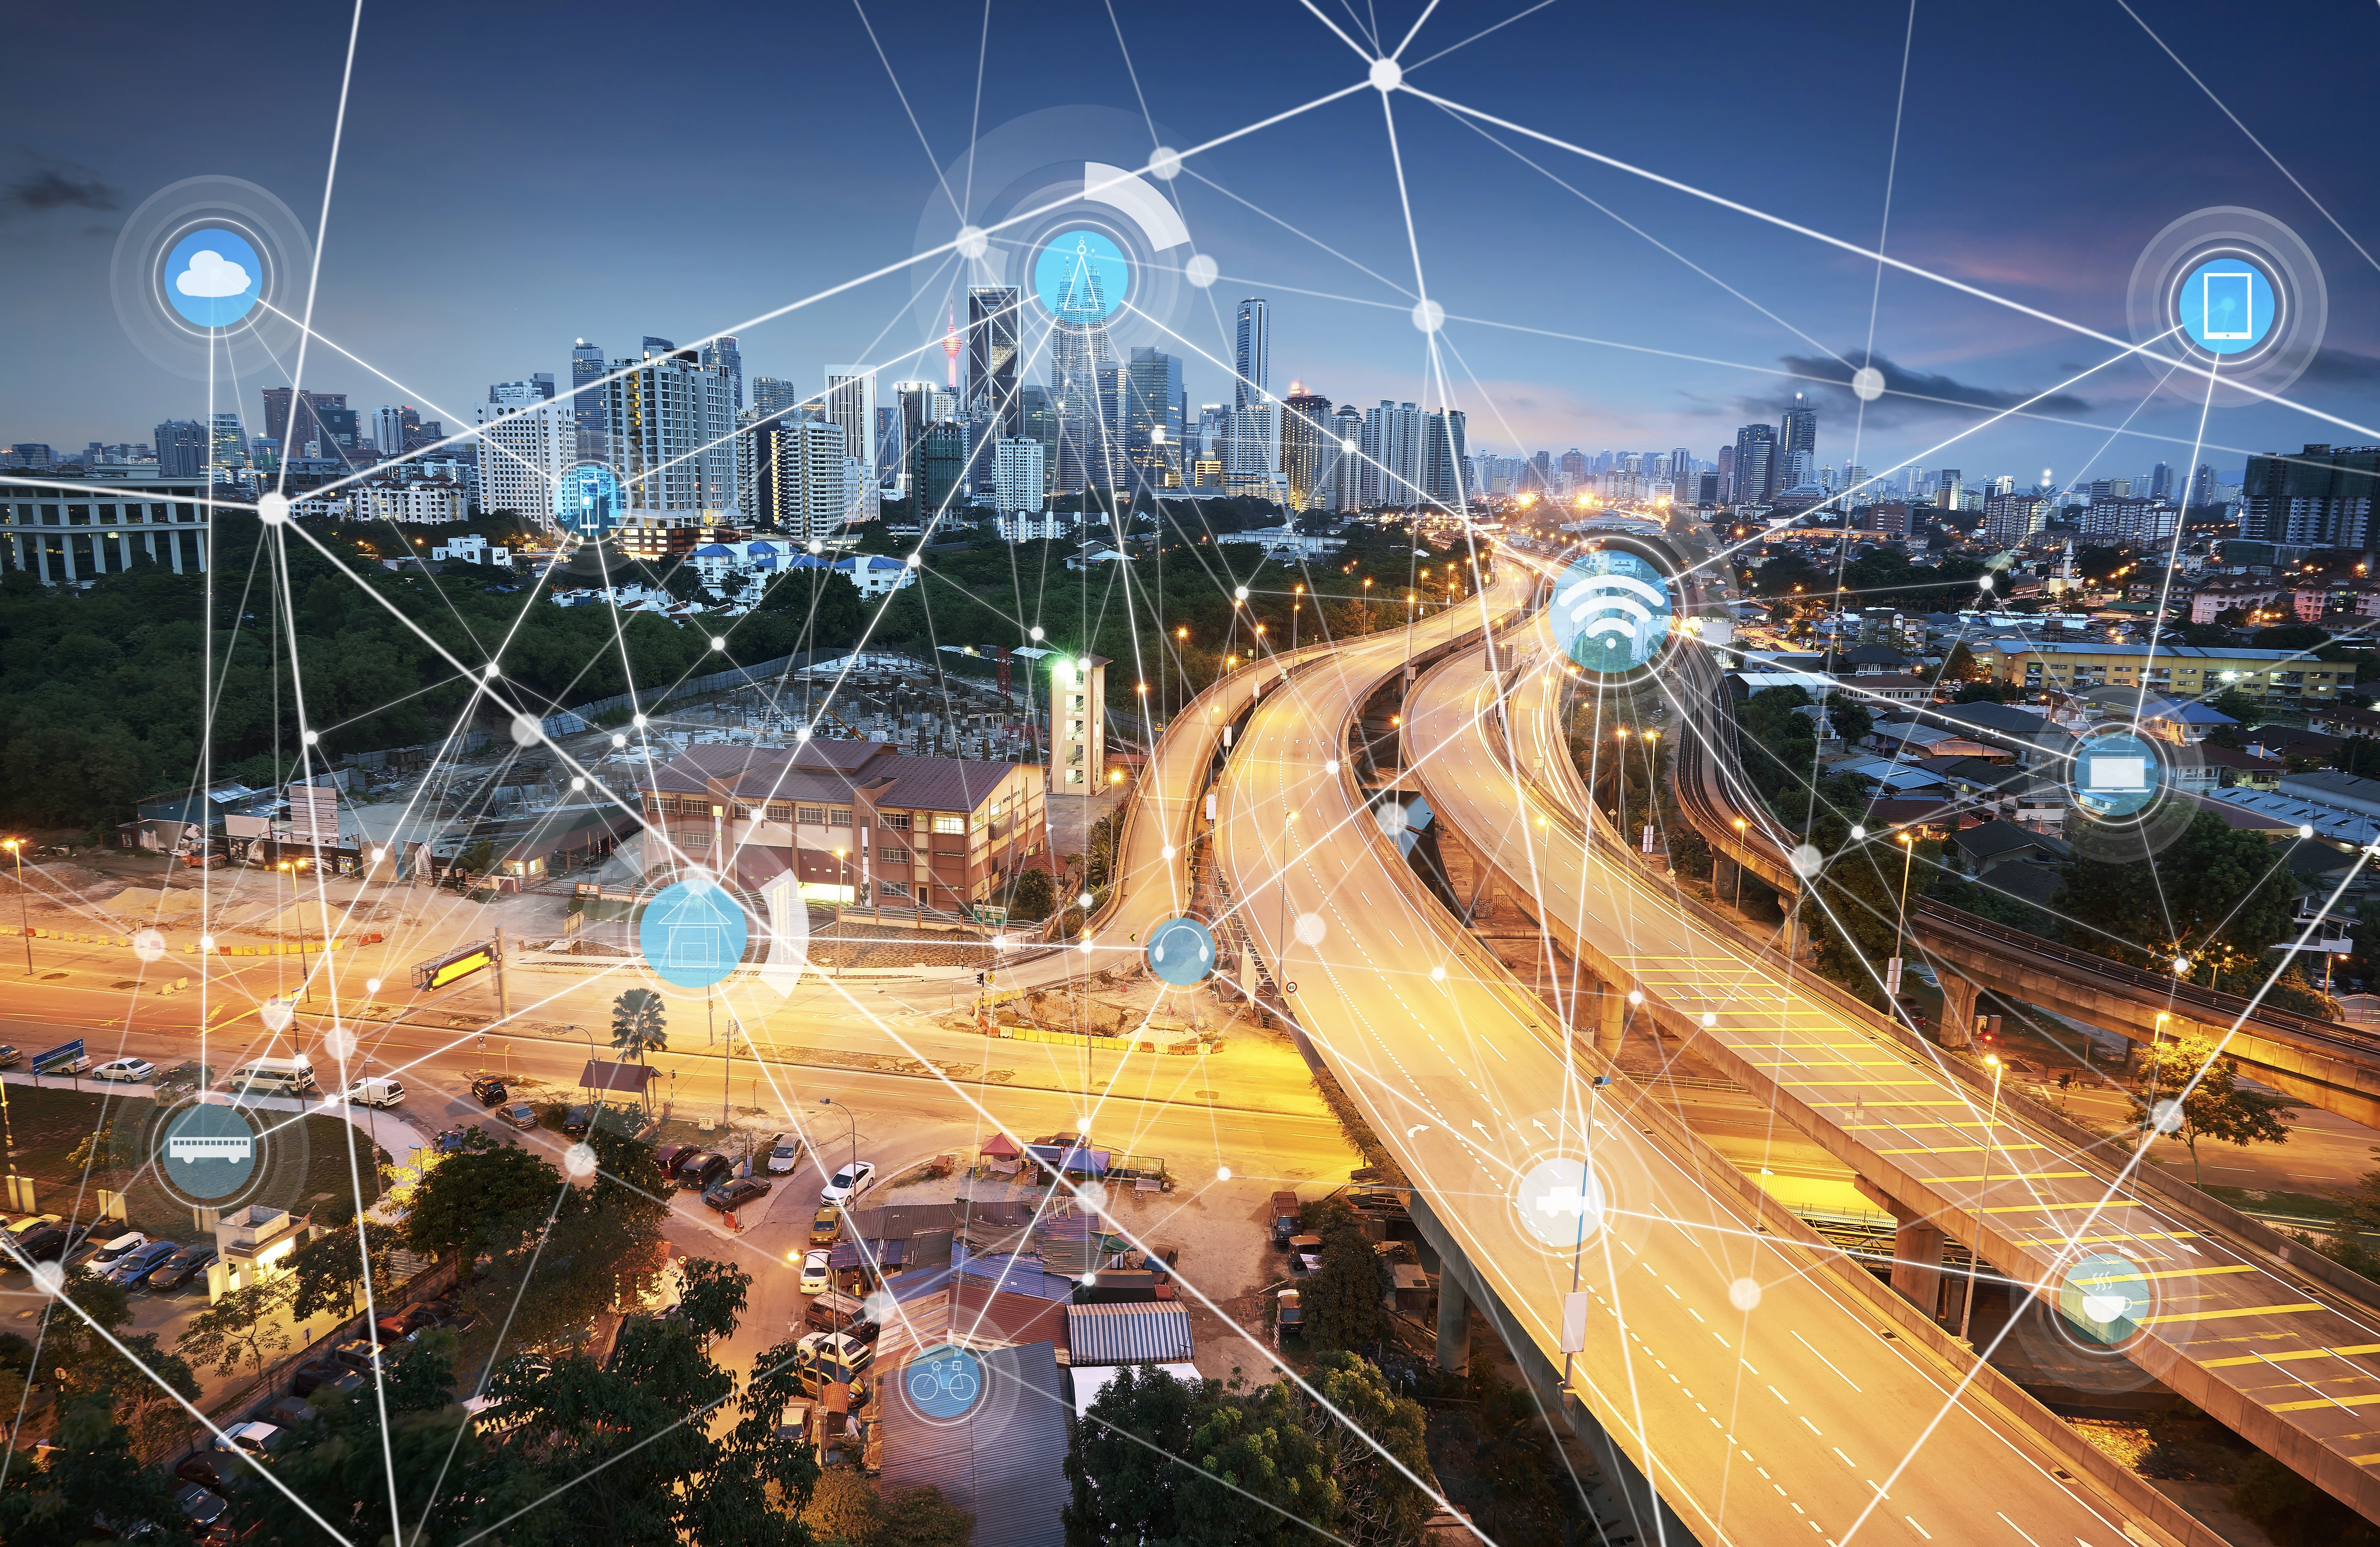 CIMCON Lighting Launches the NearSky™ Connect Program to Accelerate Smart City Transformations